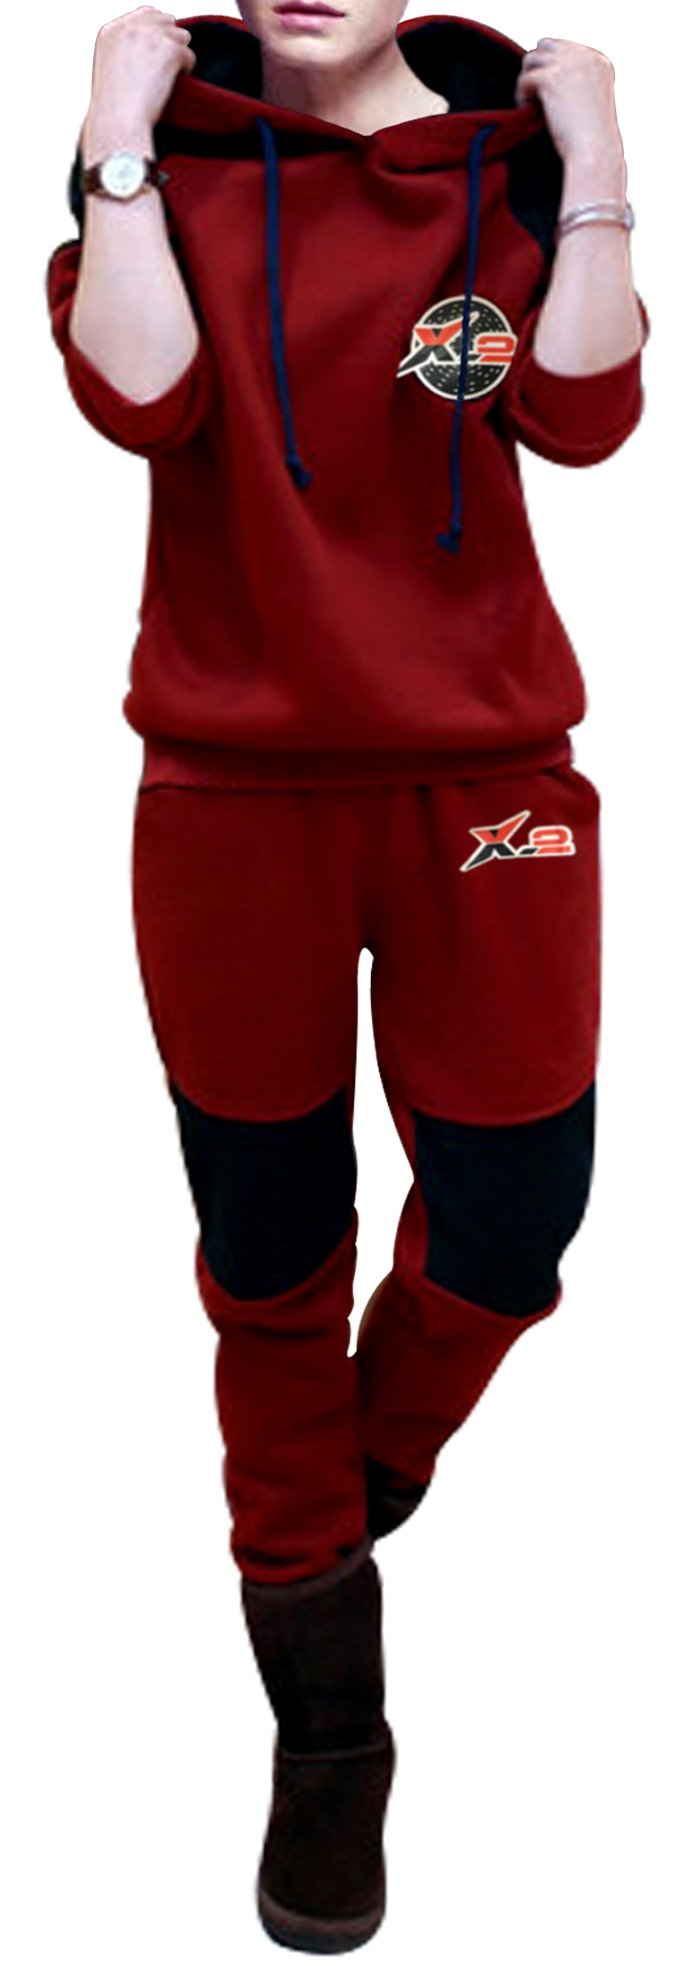 X-2 Women Athletic Fleece Tracksuit Sweatsuit Activewear Navy-Panel Maroon XXL by X-2 (Image #1)